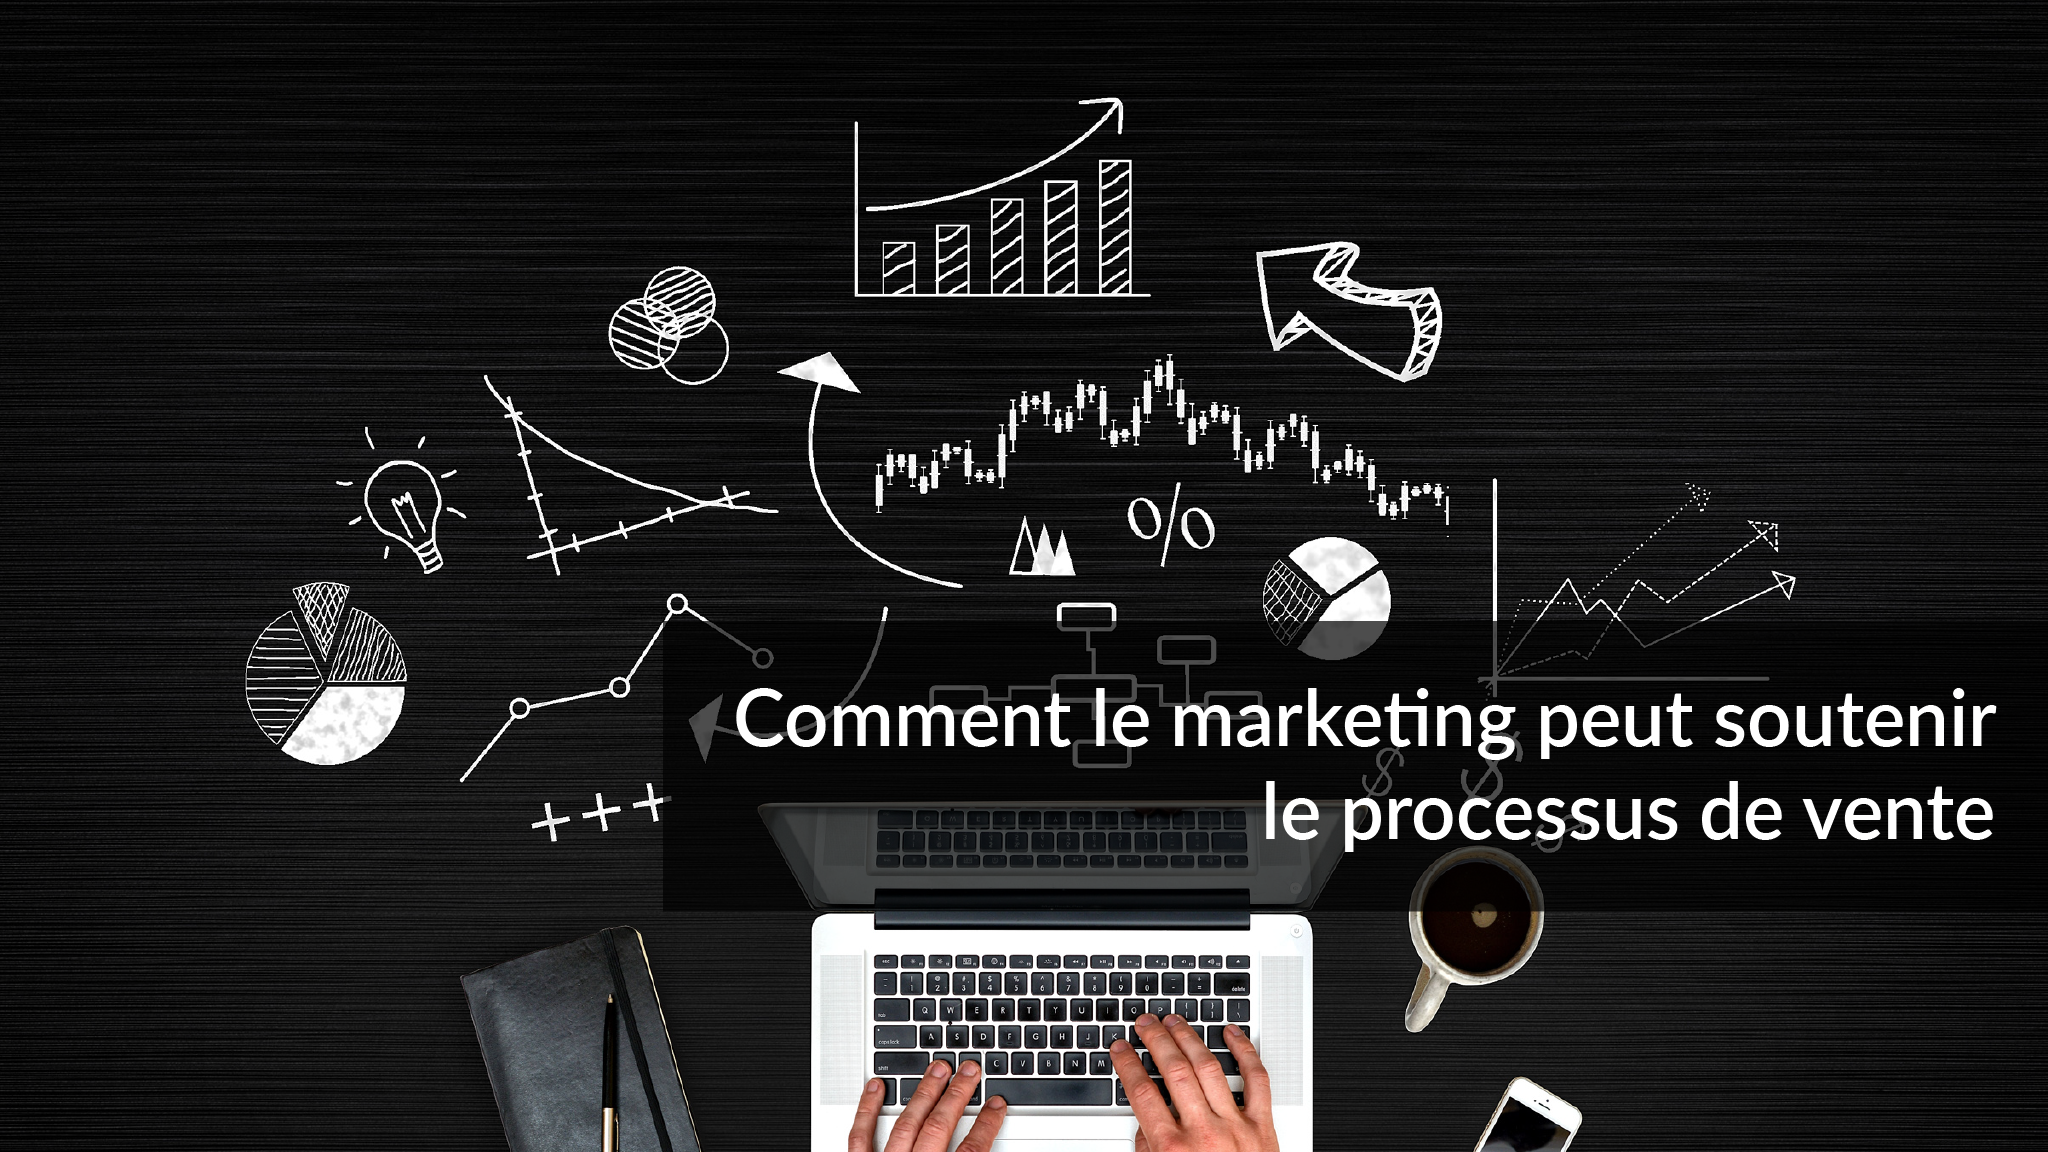 Comment le marketing peut soutenir le processus de vente | Studio Grafik